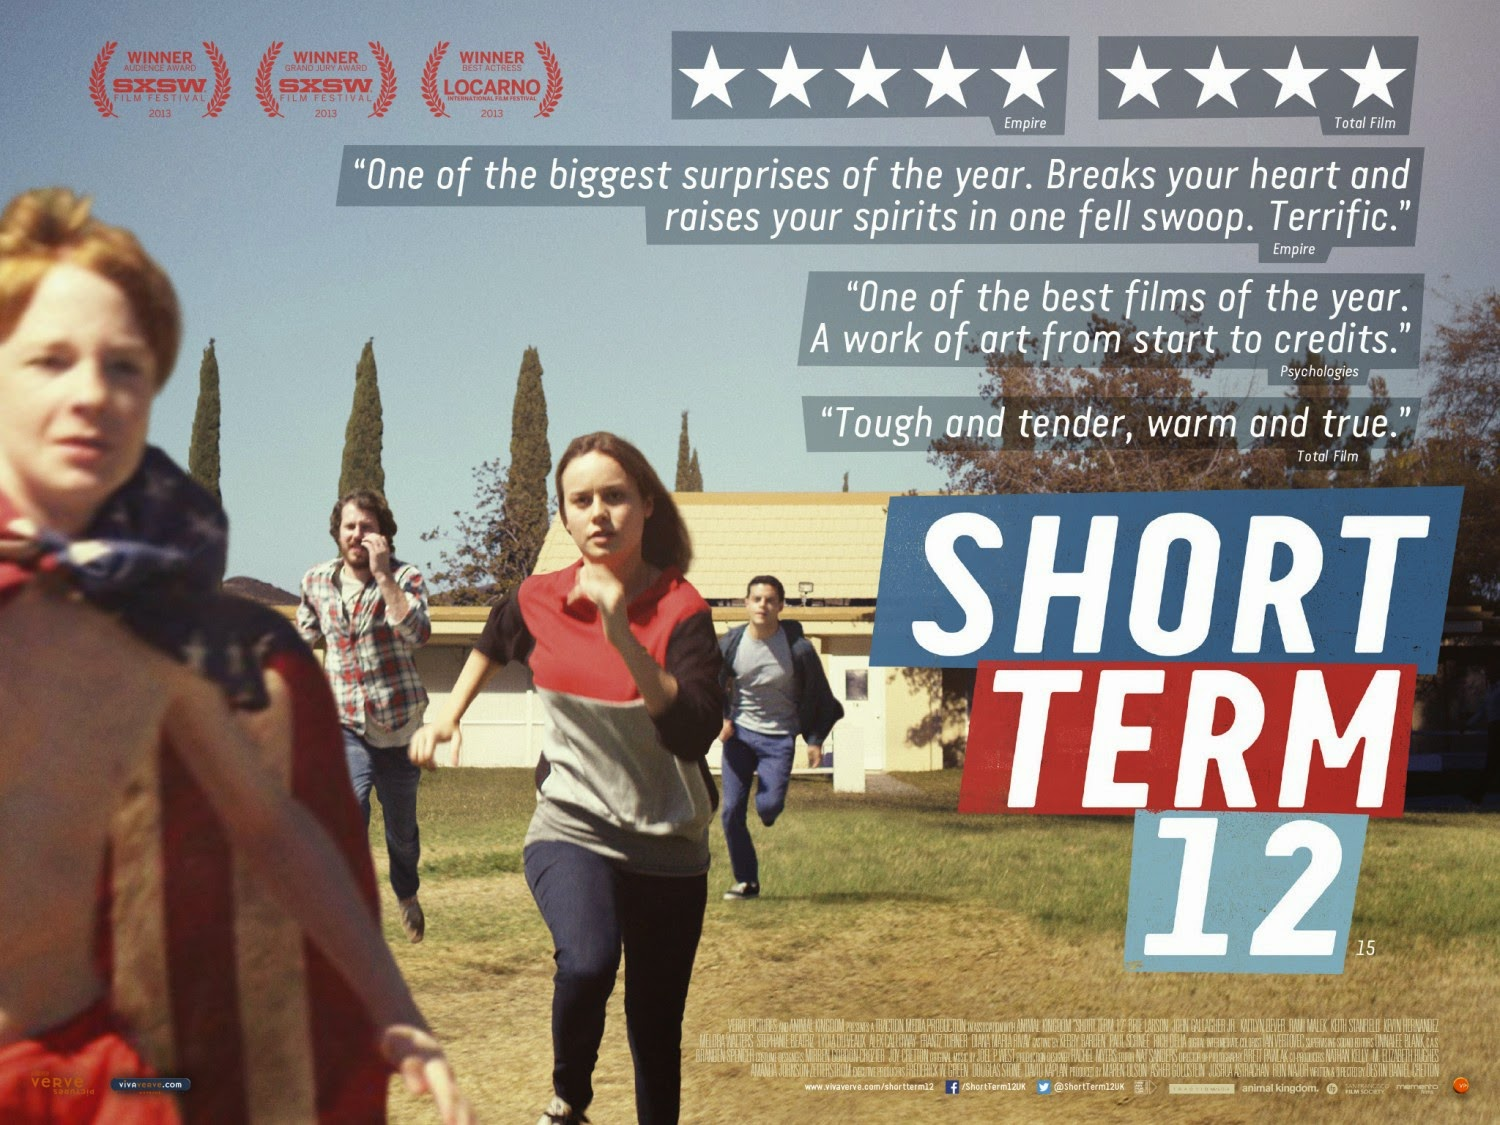 Short Term 12  is one of the best but rare and underrated Hollywood films that you may not have watched